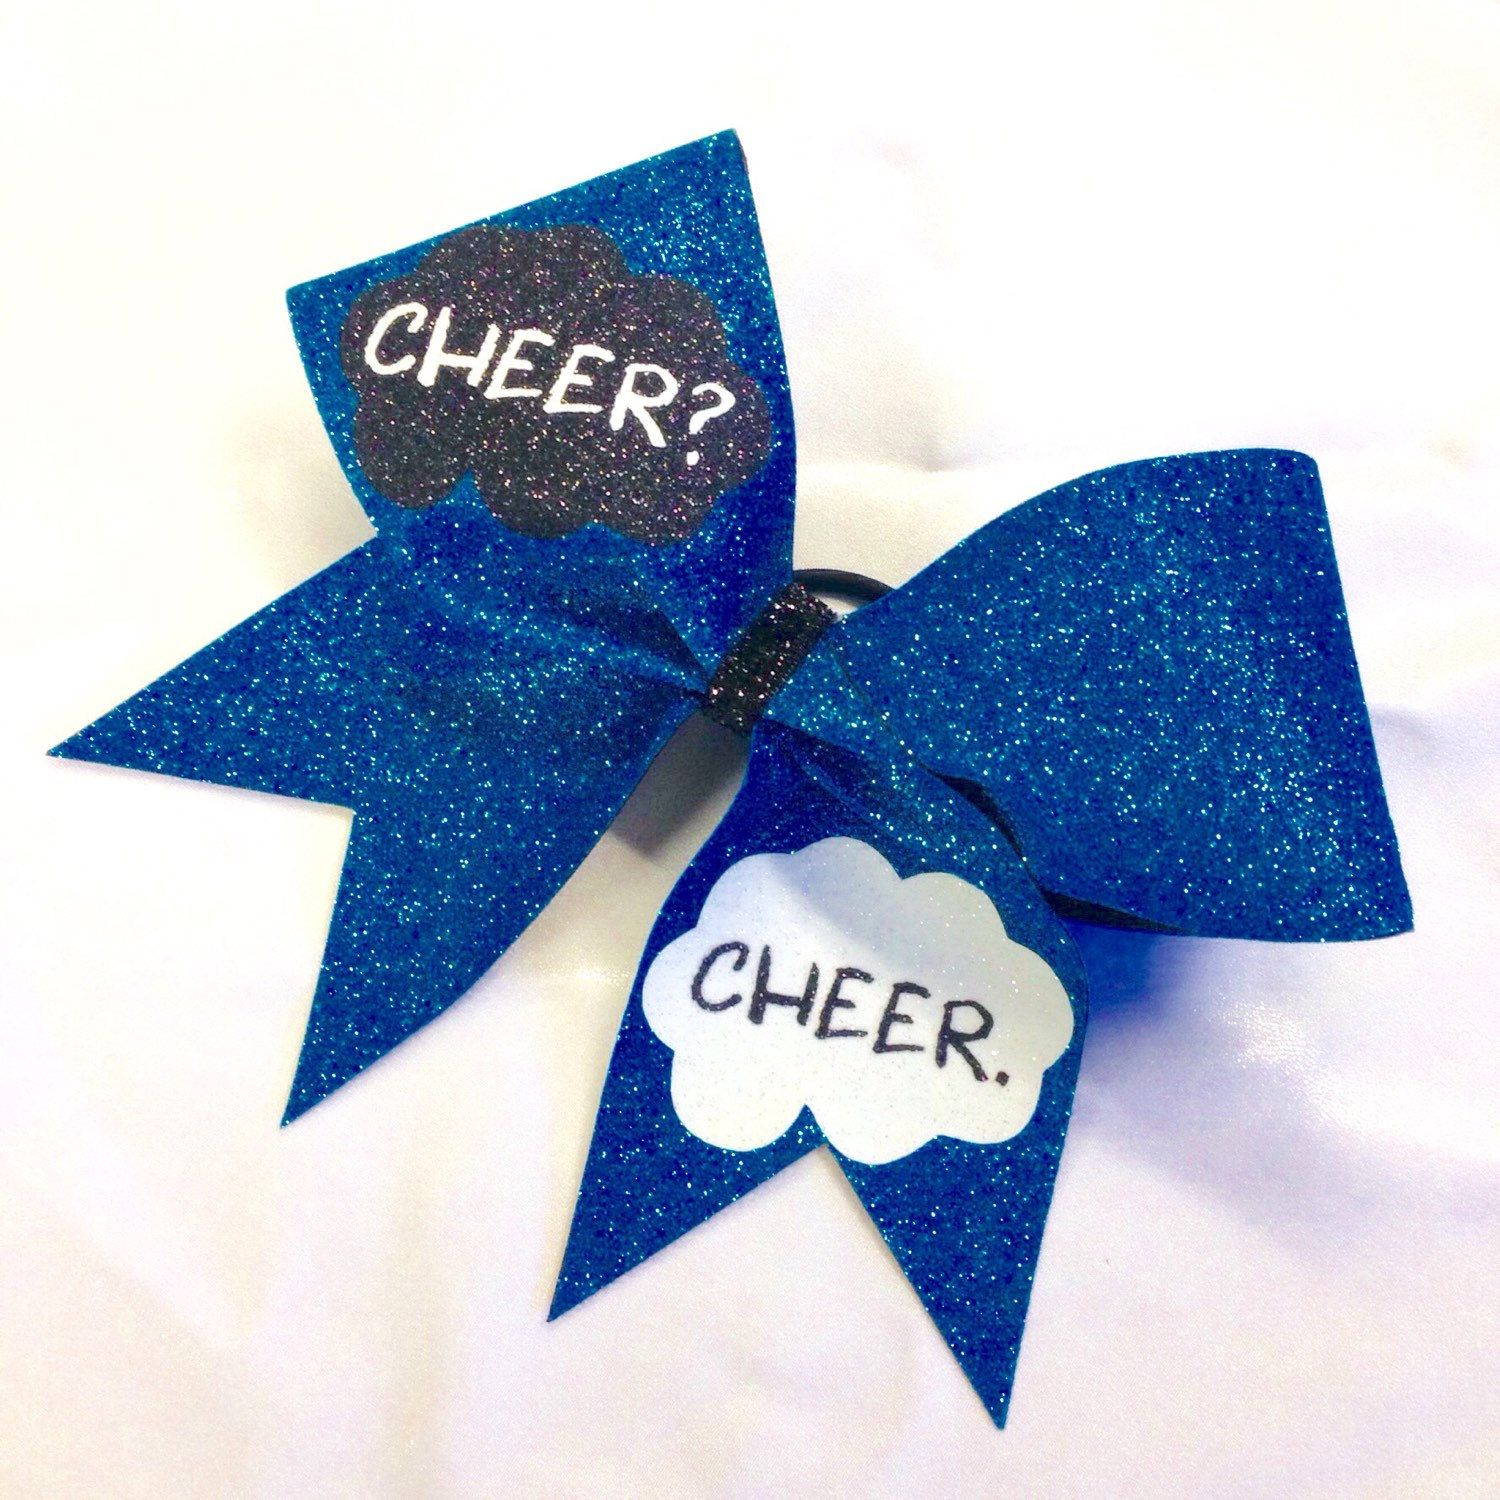 Cheer? Cheer. - Cheer Bow by BlingItOnDesignsCA on Etsy https://www.etsy.com/listing/200668053/cheer-cheer-cheer-bow